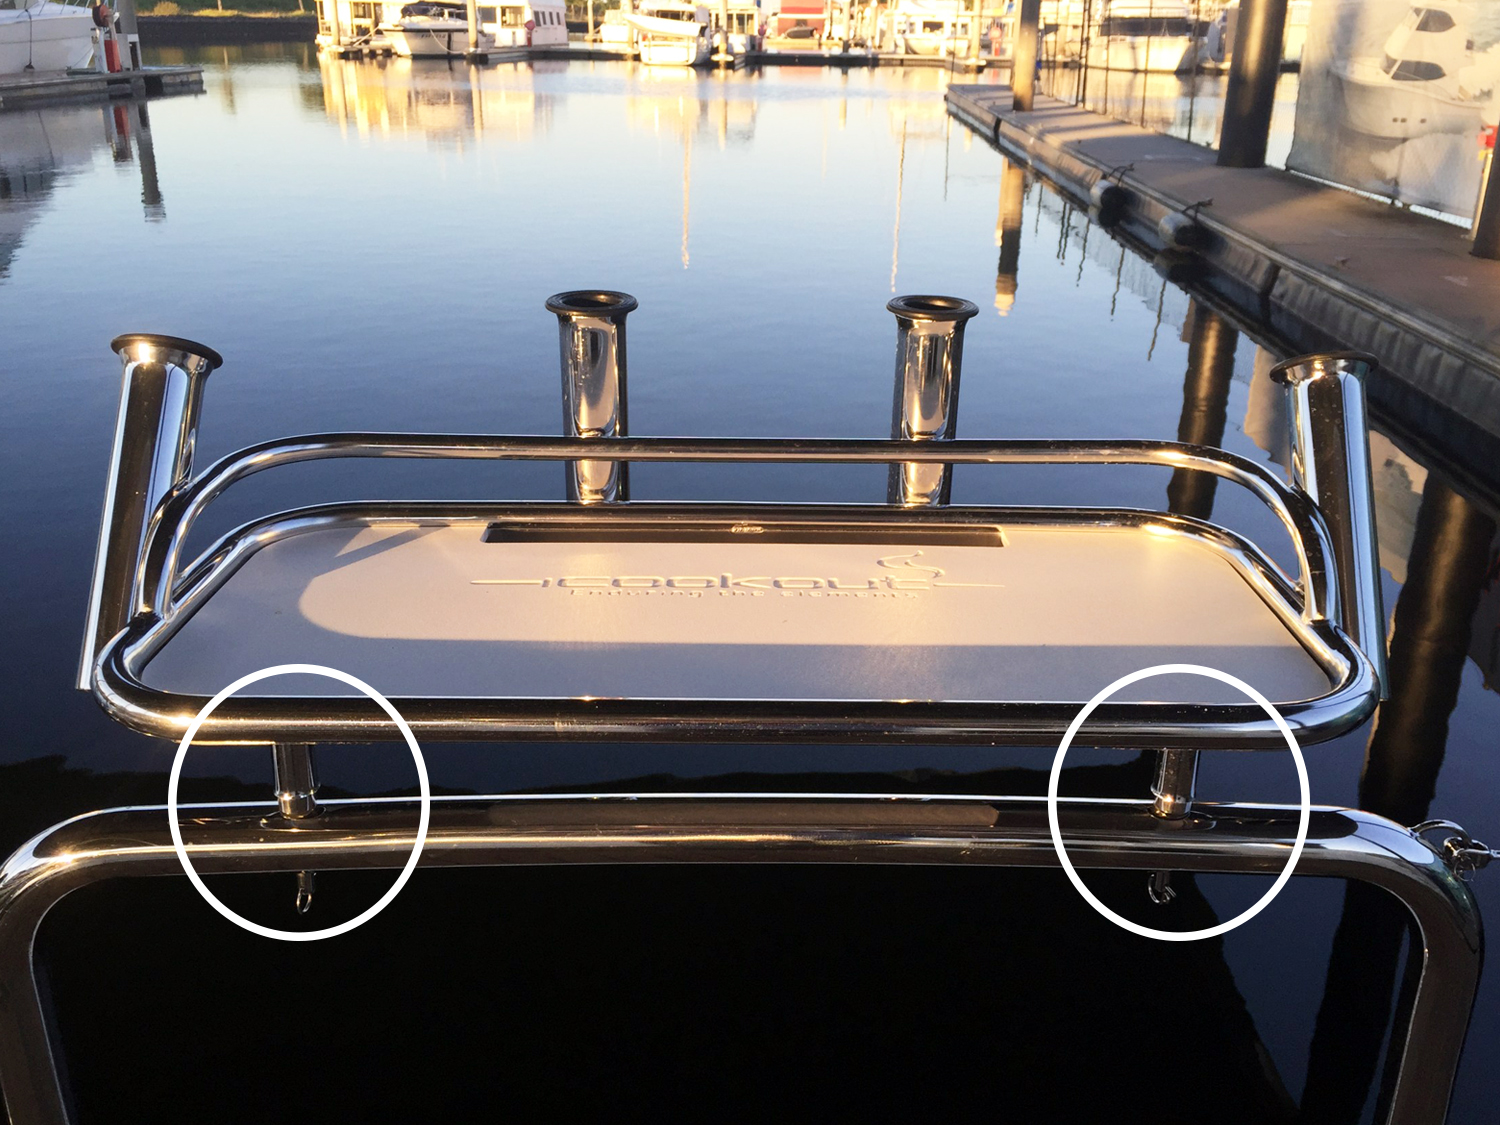 Removable Pins for Duckboard Rails for Bait Board